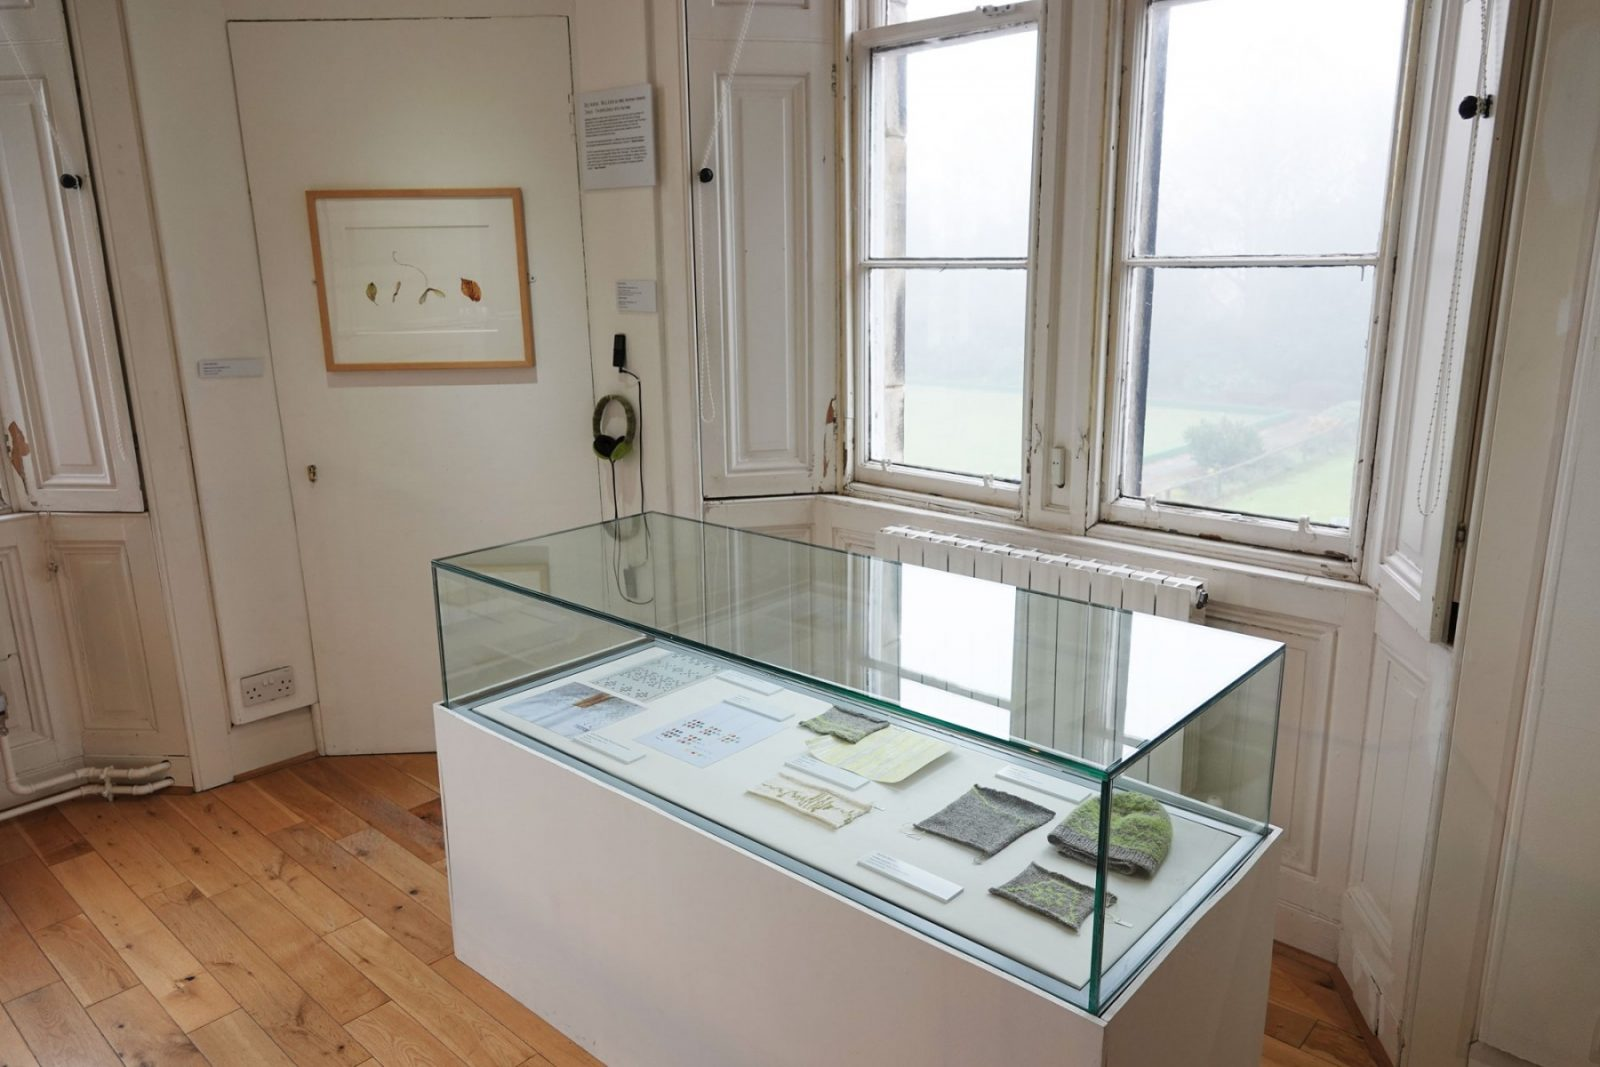 Deirdre Nelson & Inge Thomson - Lines from Scotland at St Andrews Museum